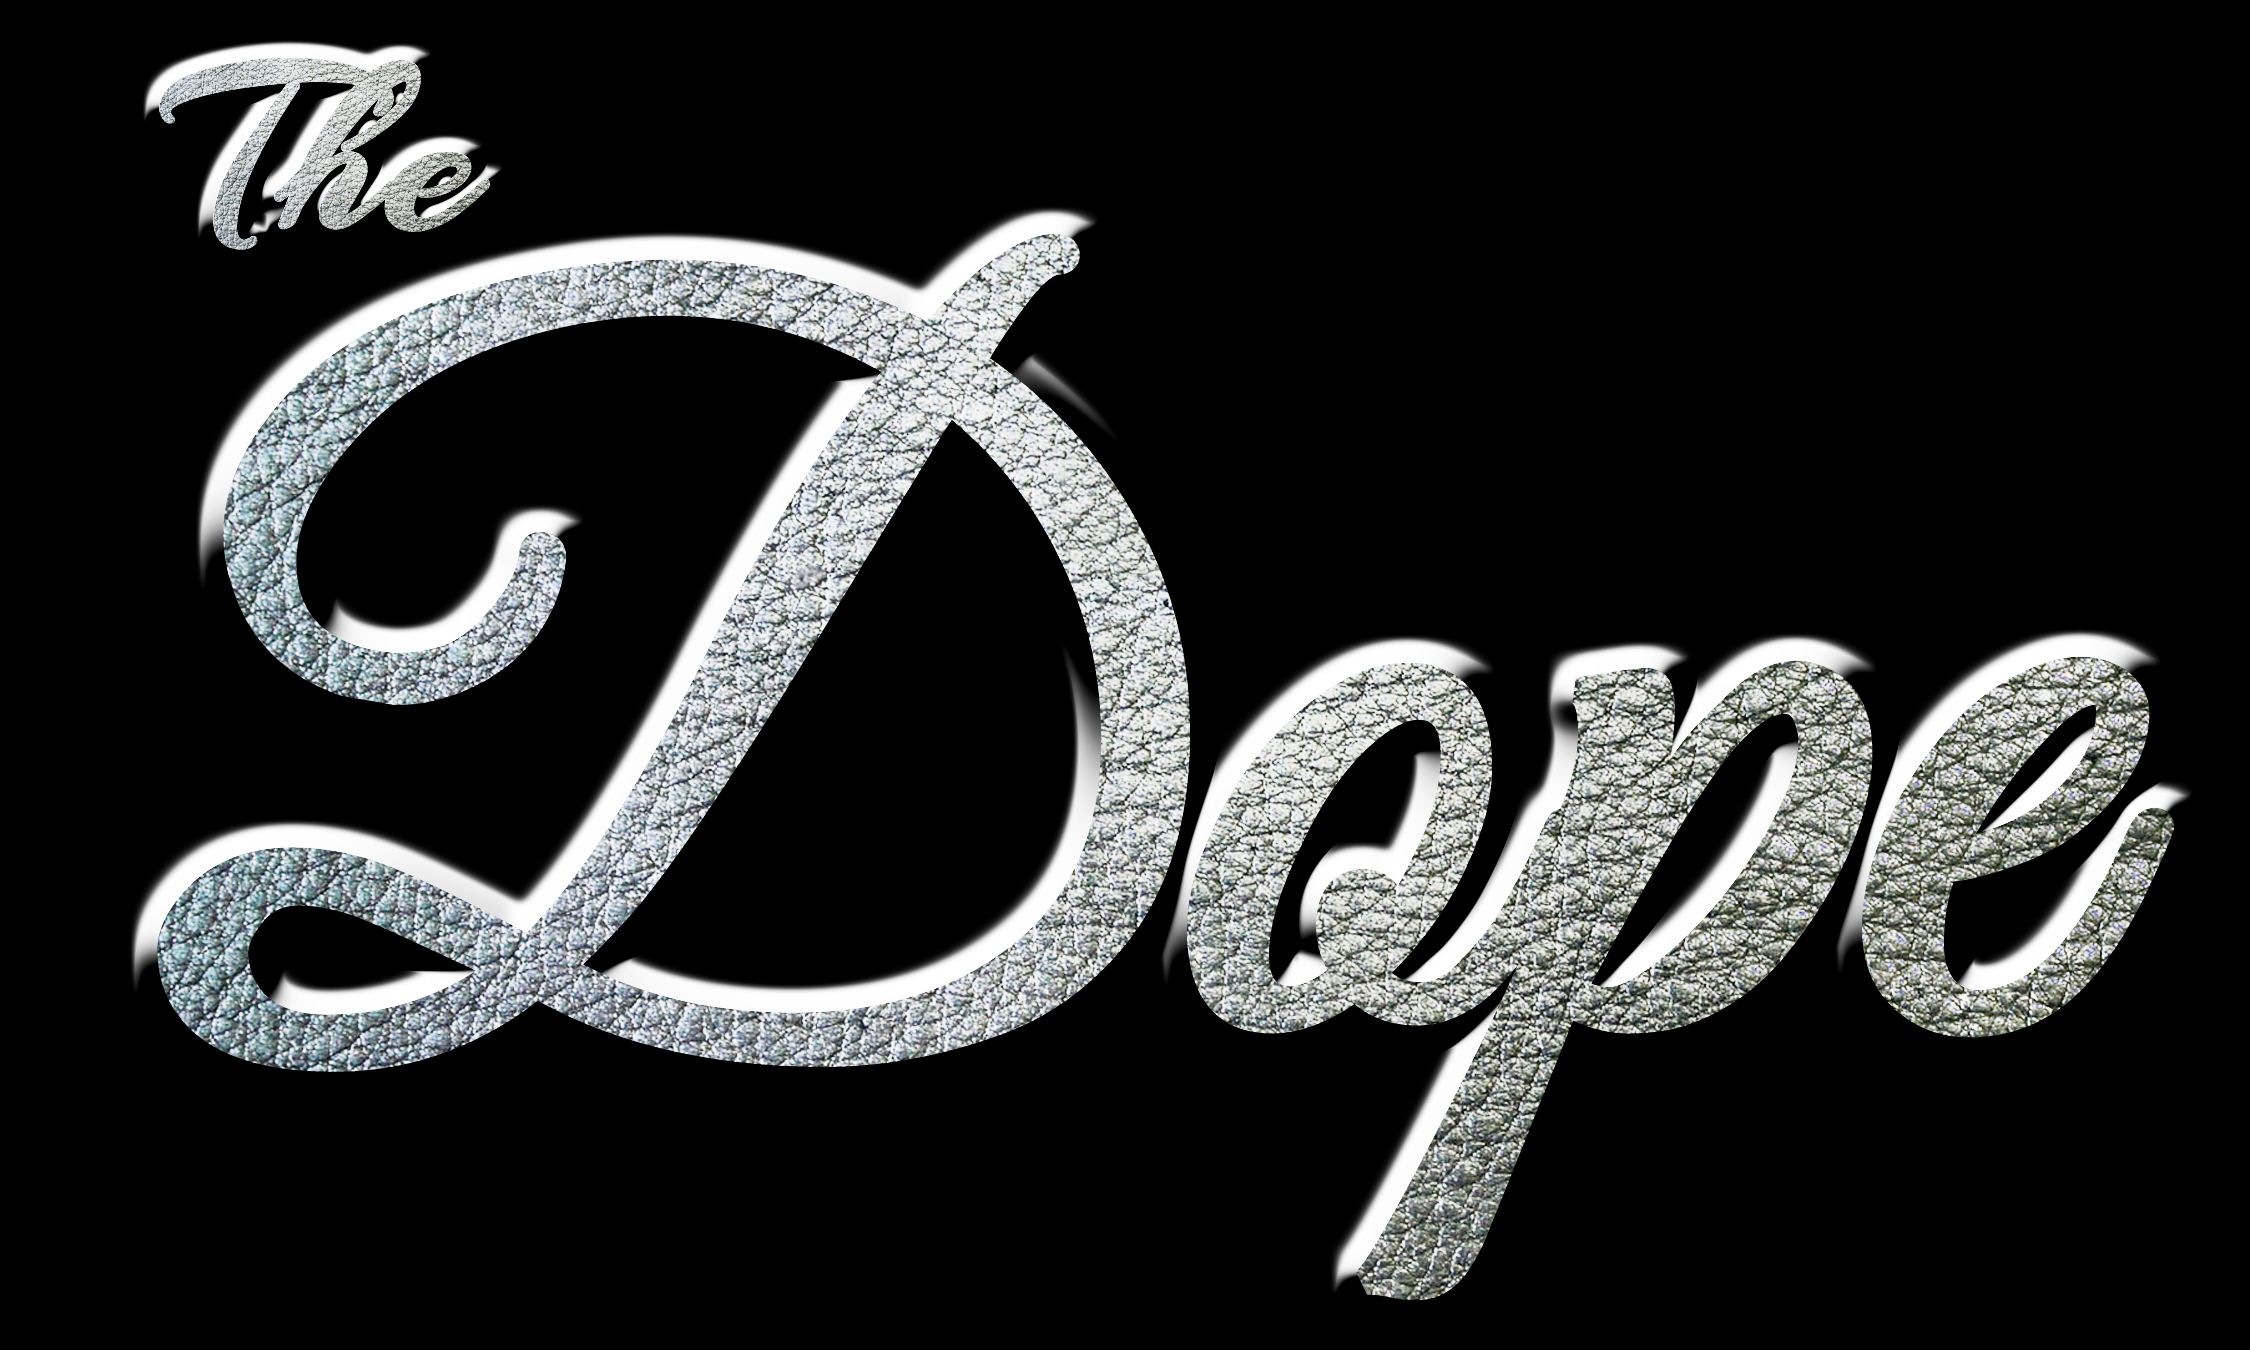 The Dope Logo